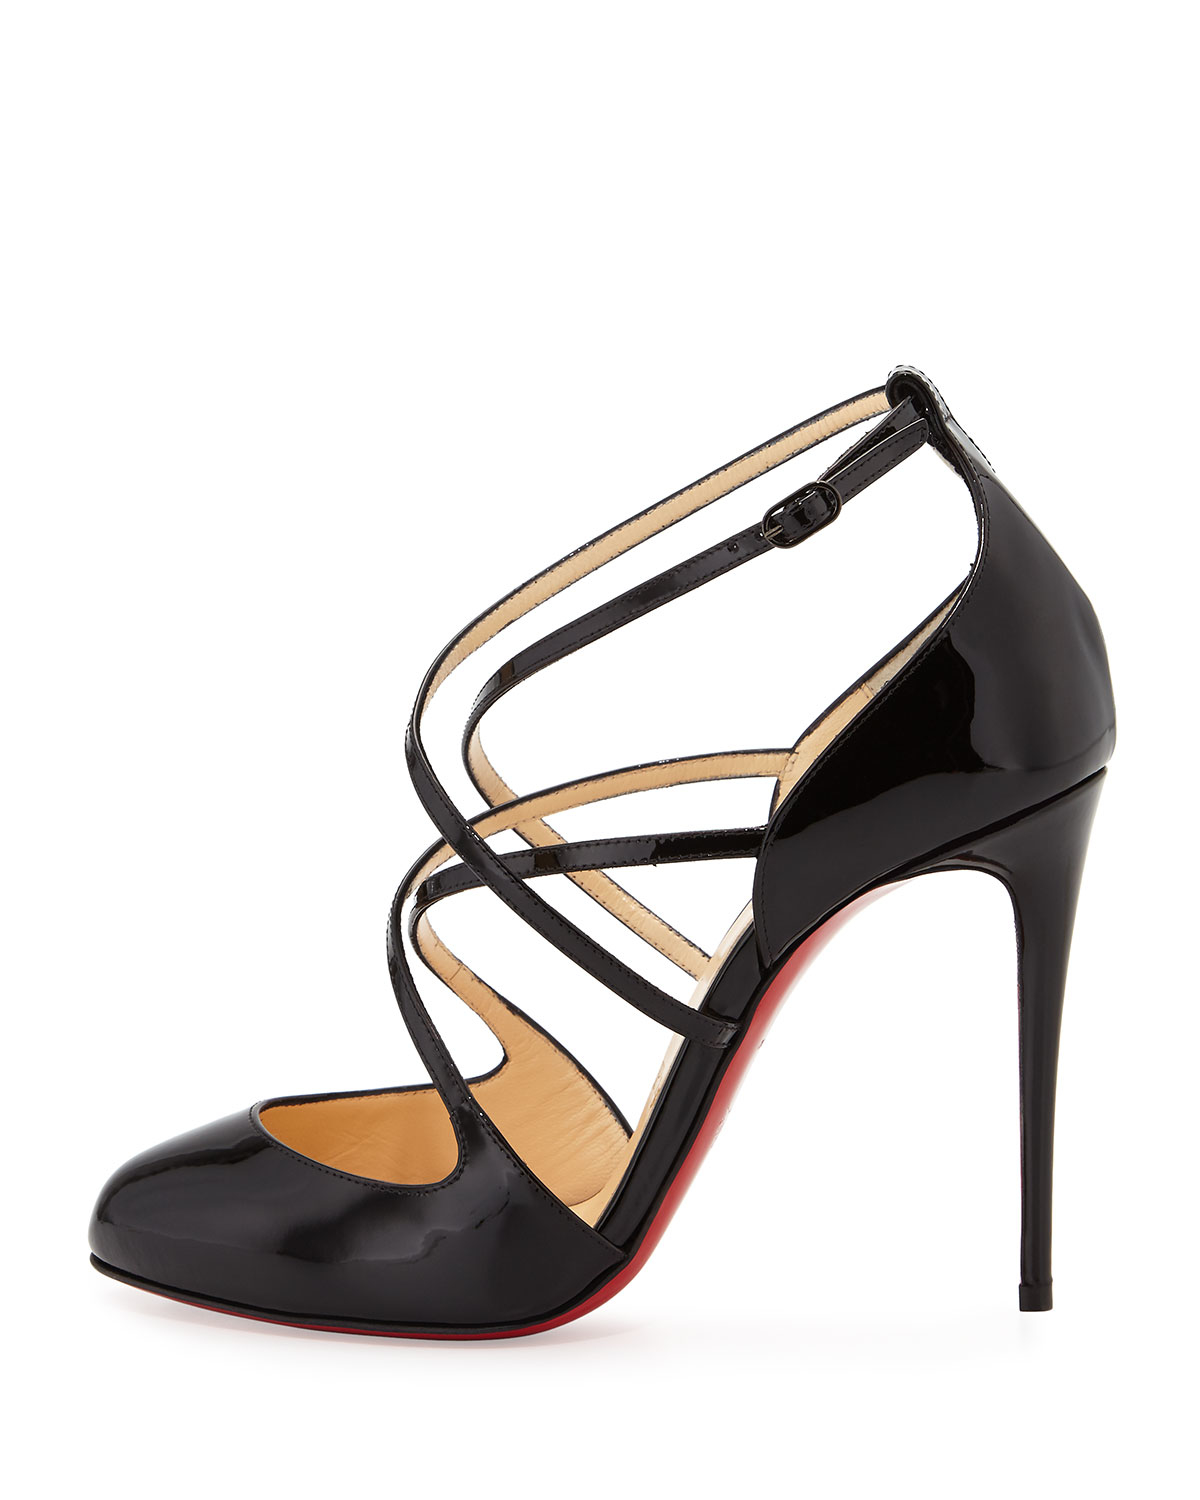 christian louboutin mens spiked loafers - christian louboutin women's marlenarock pumps, christian louboutin ...